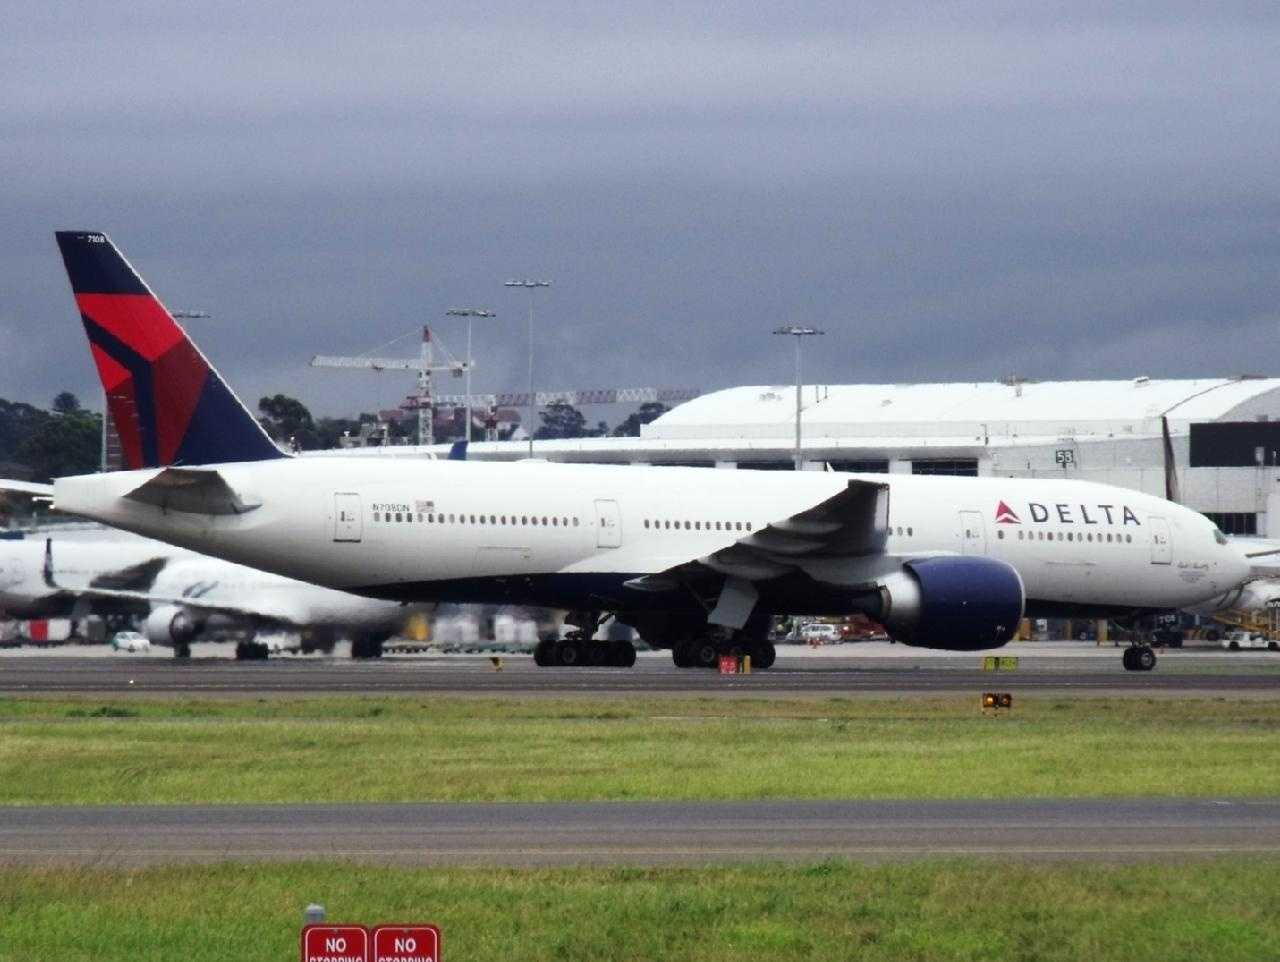 Seattle Delta flight turns around after passenger assaults attendant